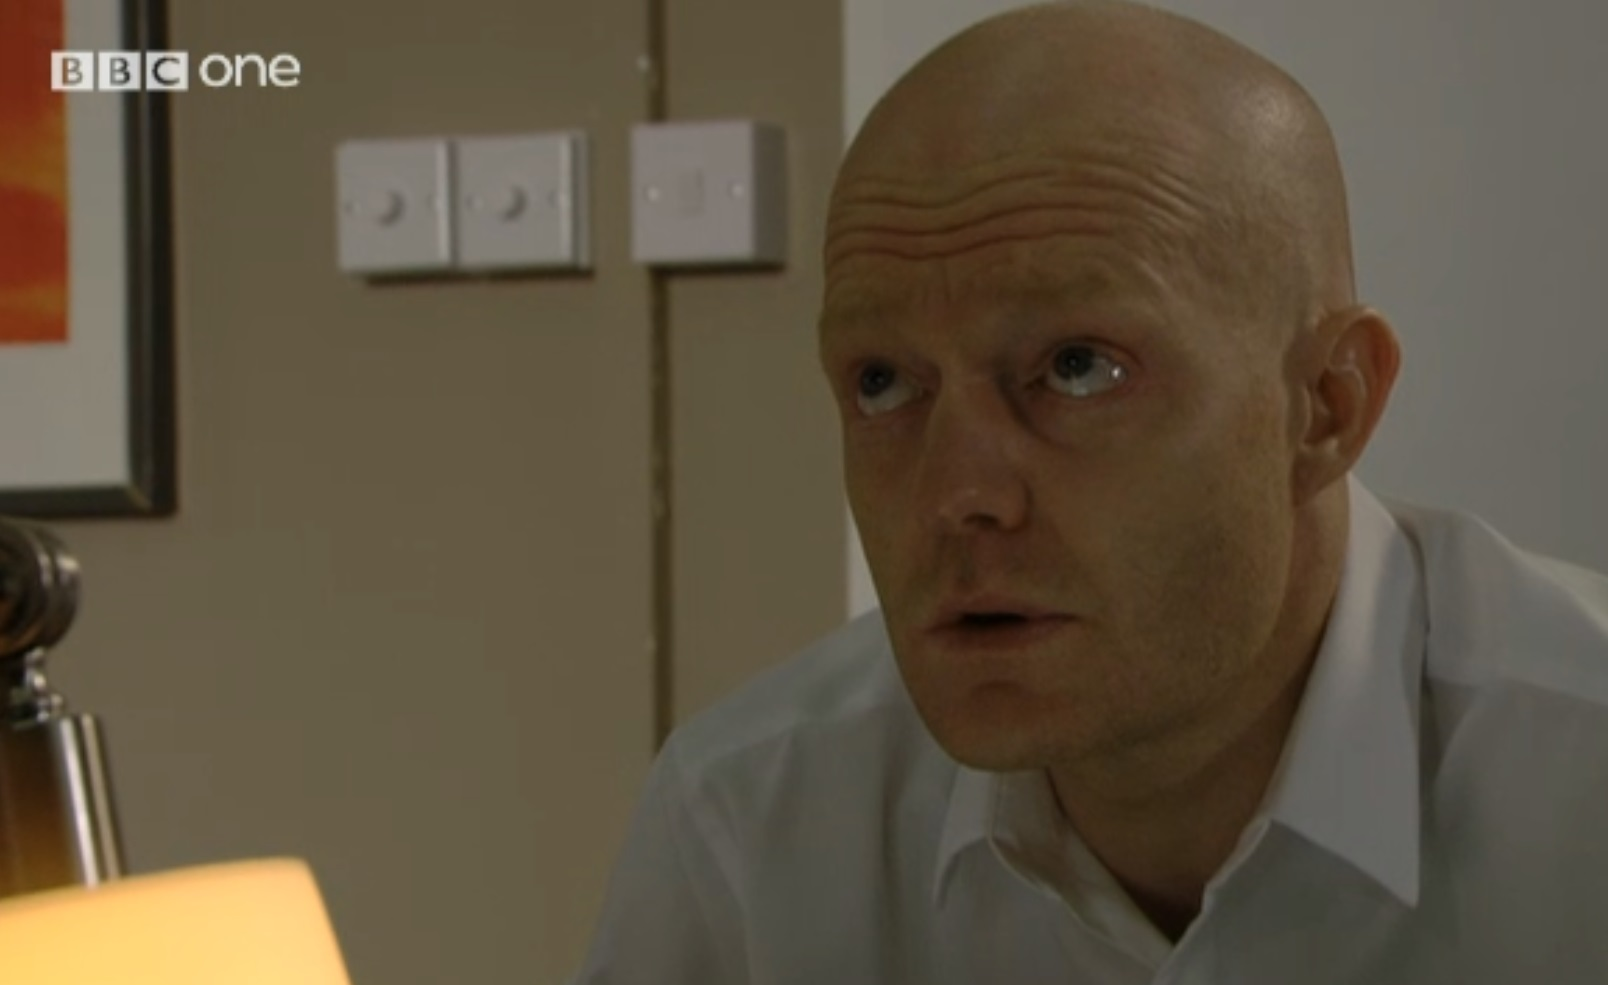 EastEnders mystery over who killed Lucy Beale continues: The many suspicious faces of Max Branning